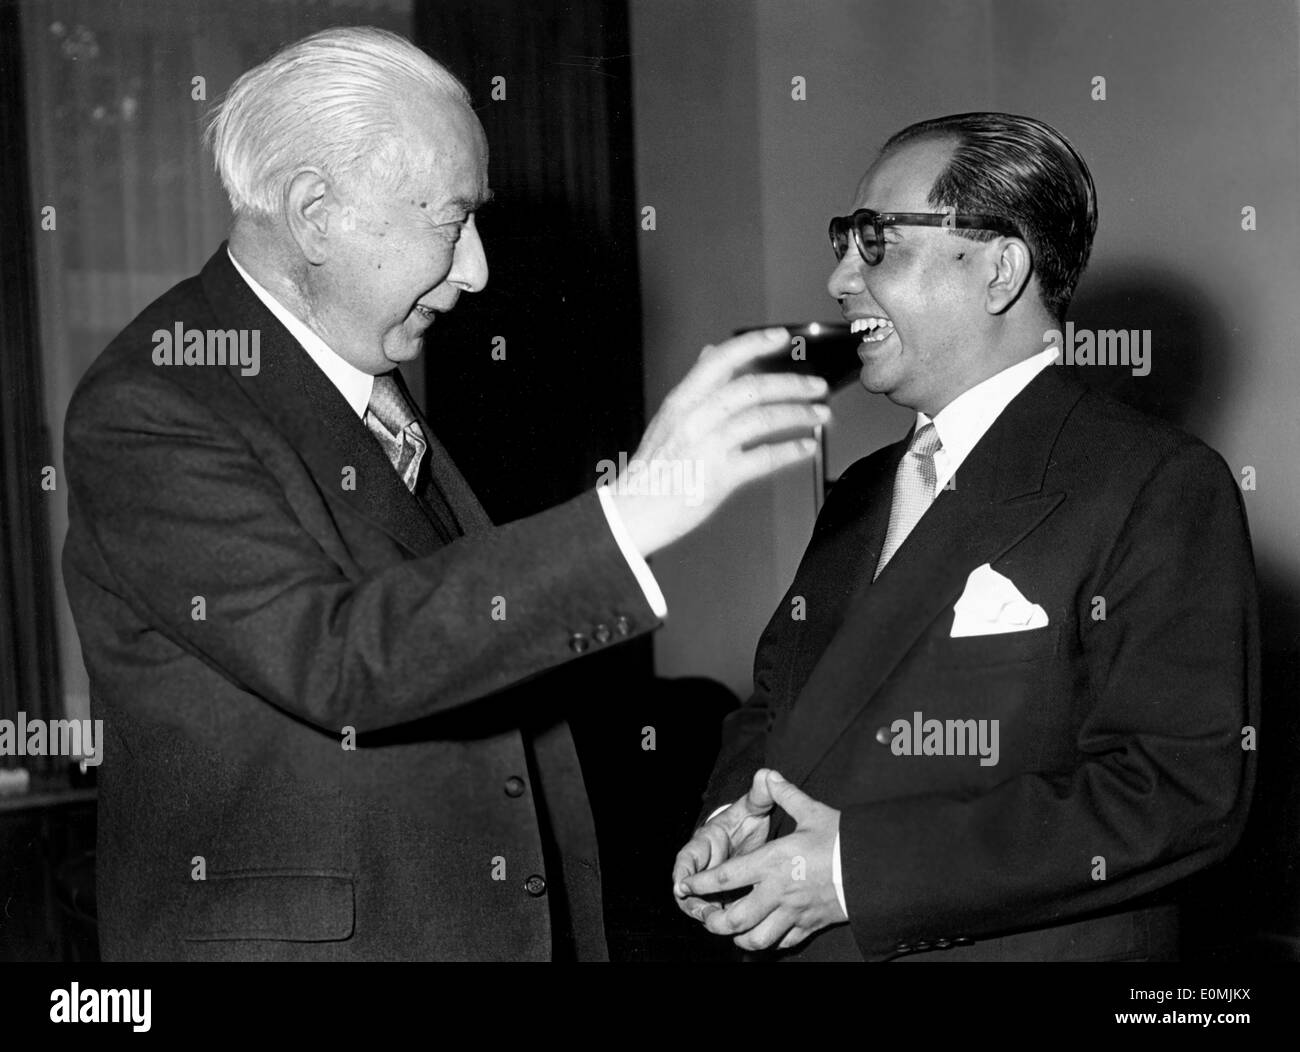 Theodor Heuss chatting with Foreign Minister Ade Anak - Stock Image